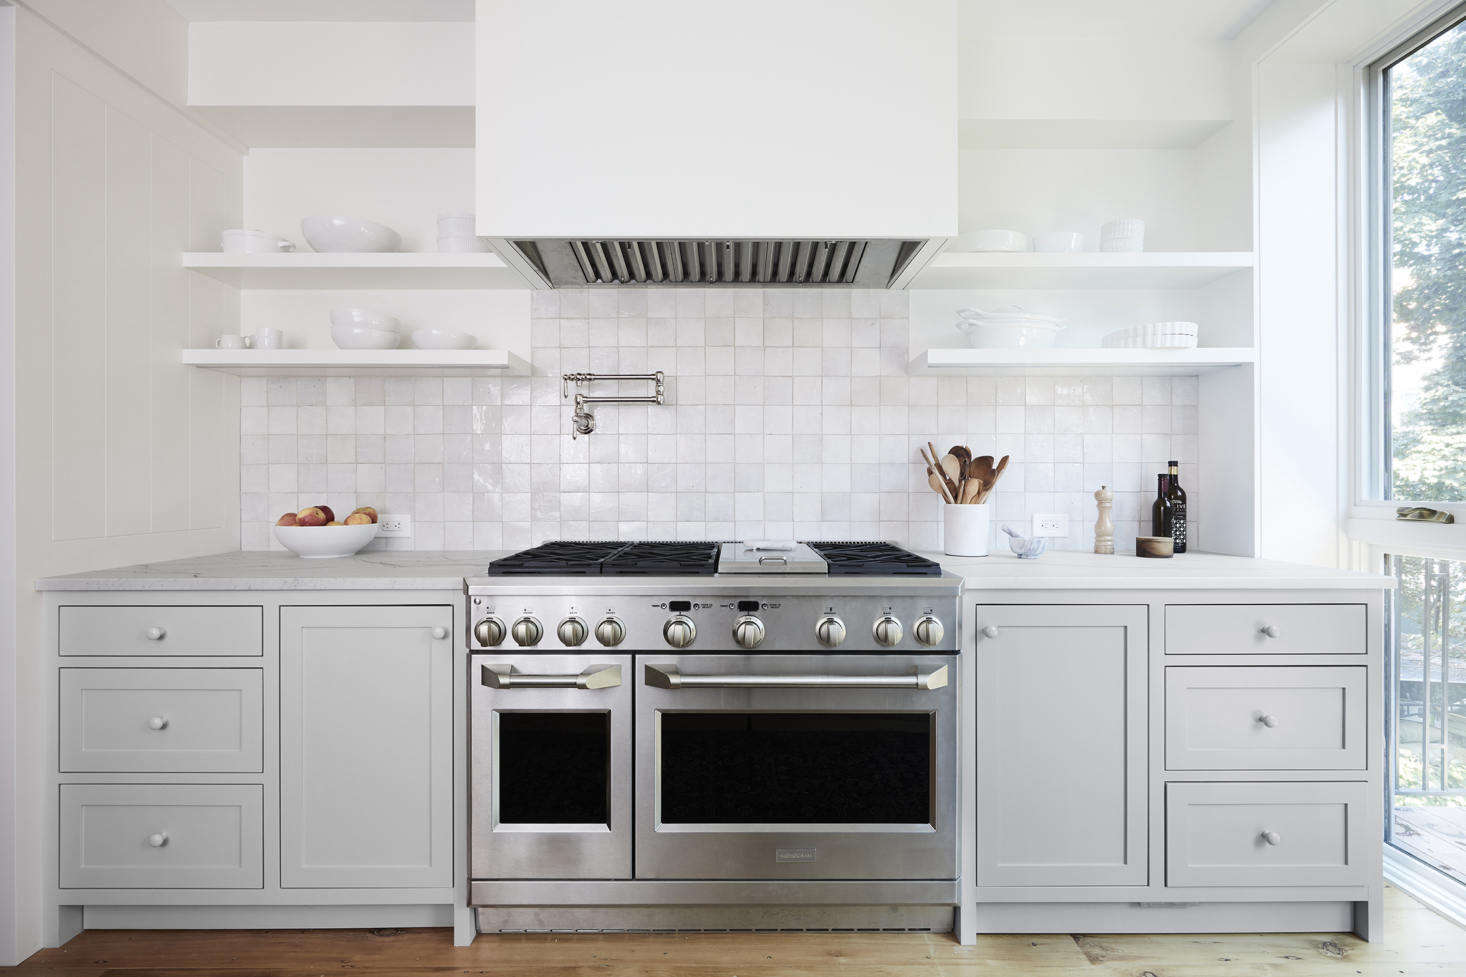 The owners purchased their 48-inch Wolf double-oven range second hand. It has a Viking hood set in a custom cover. The backsplash is in Weathered White Zellige from Clé Tiles. The pot filler above the stove came from Signature Hardware. Considering one of these yourself? See Domestic Dispatches: Why Your Kitchen Needs a Pot Filler Faucet.